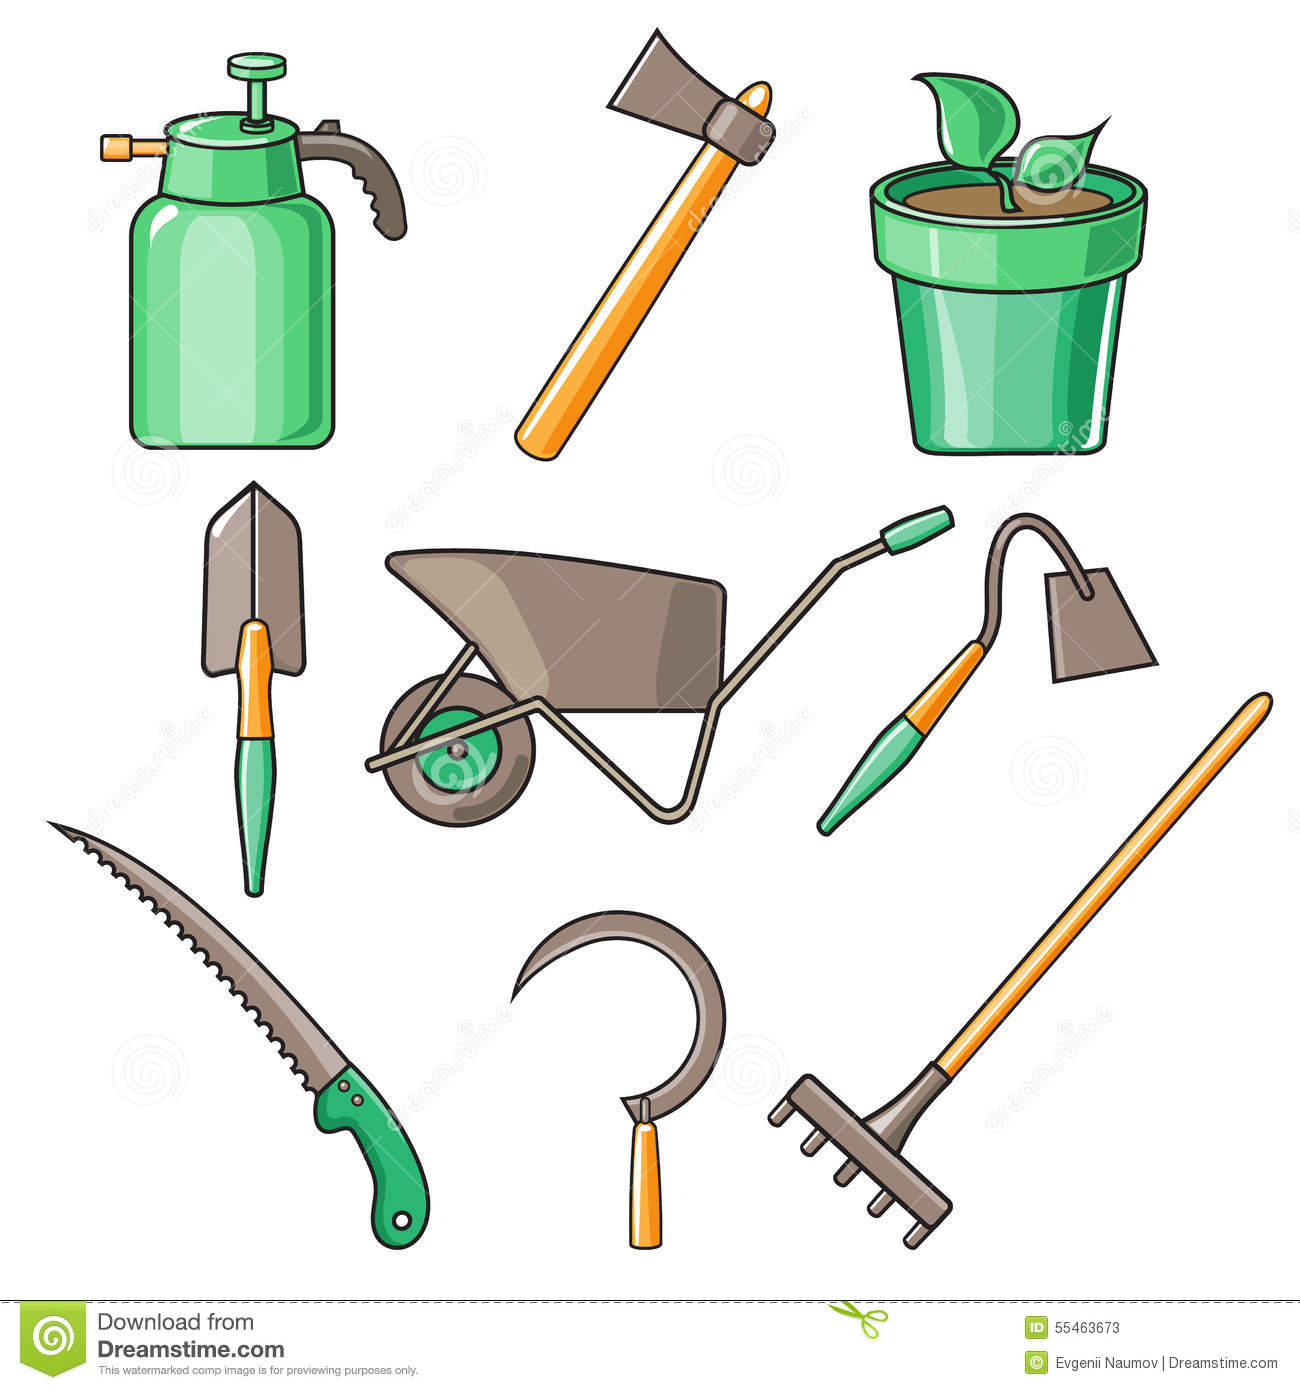 Garden tools flat design illustration stock vector image for Home and garden equipment